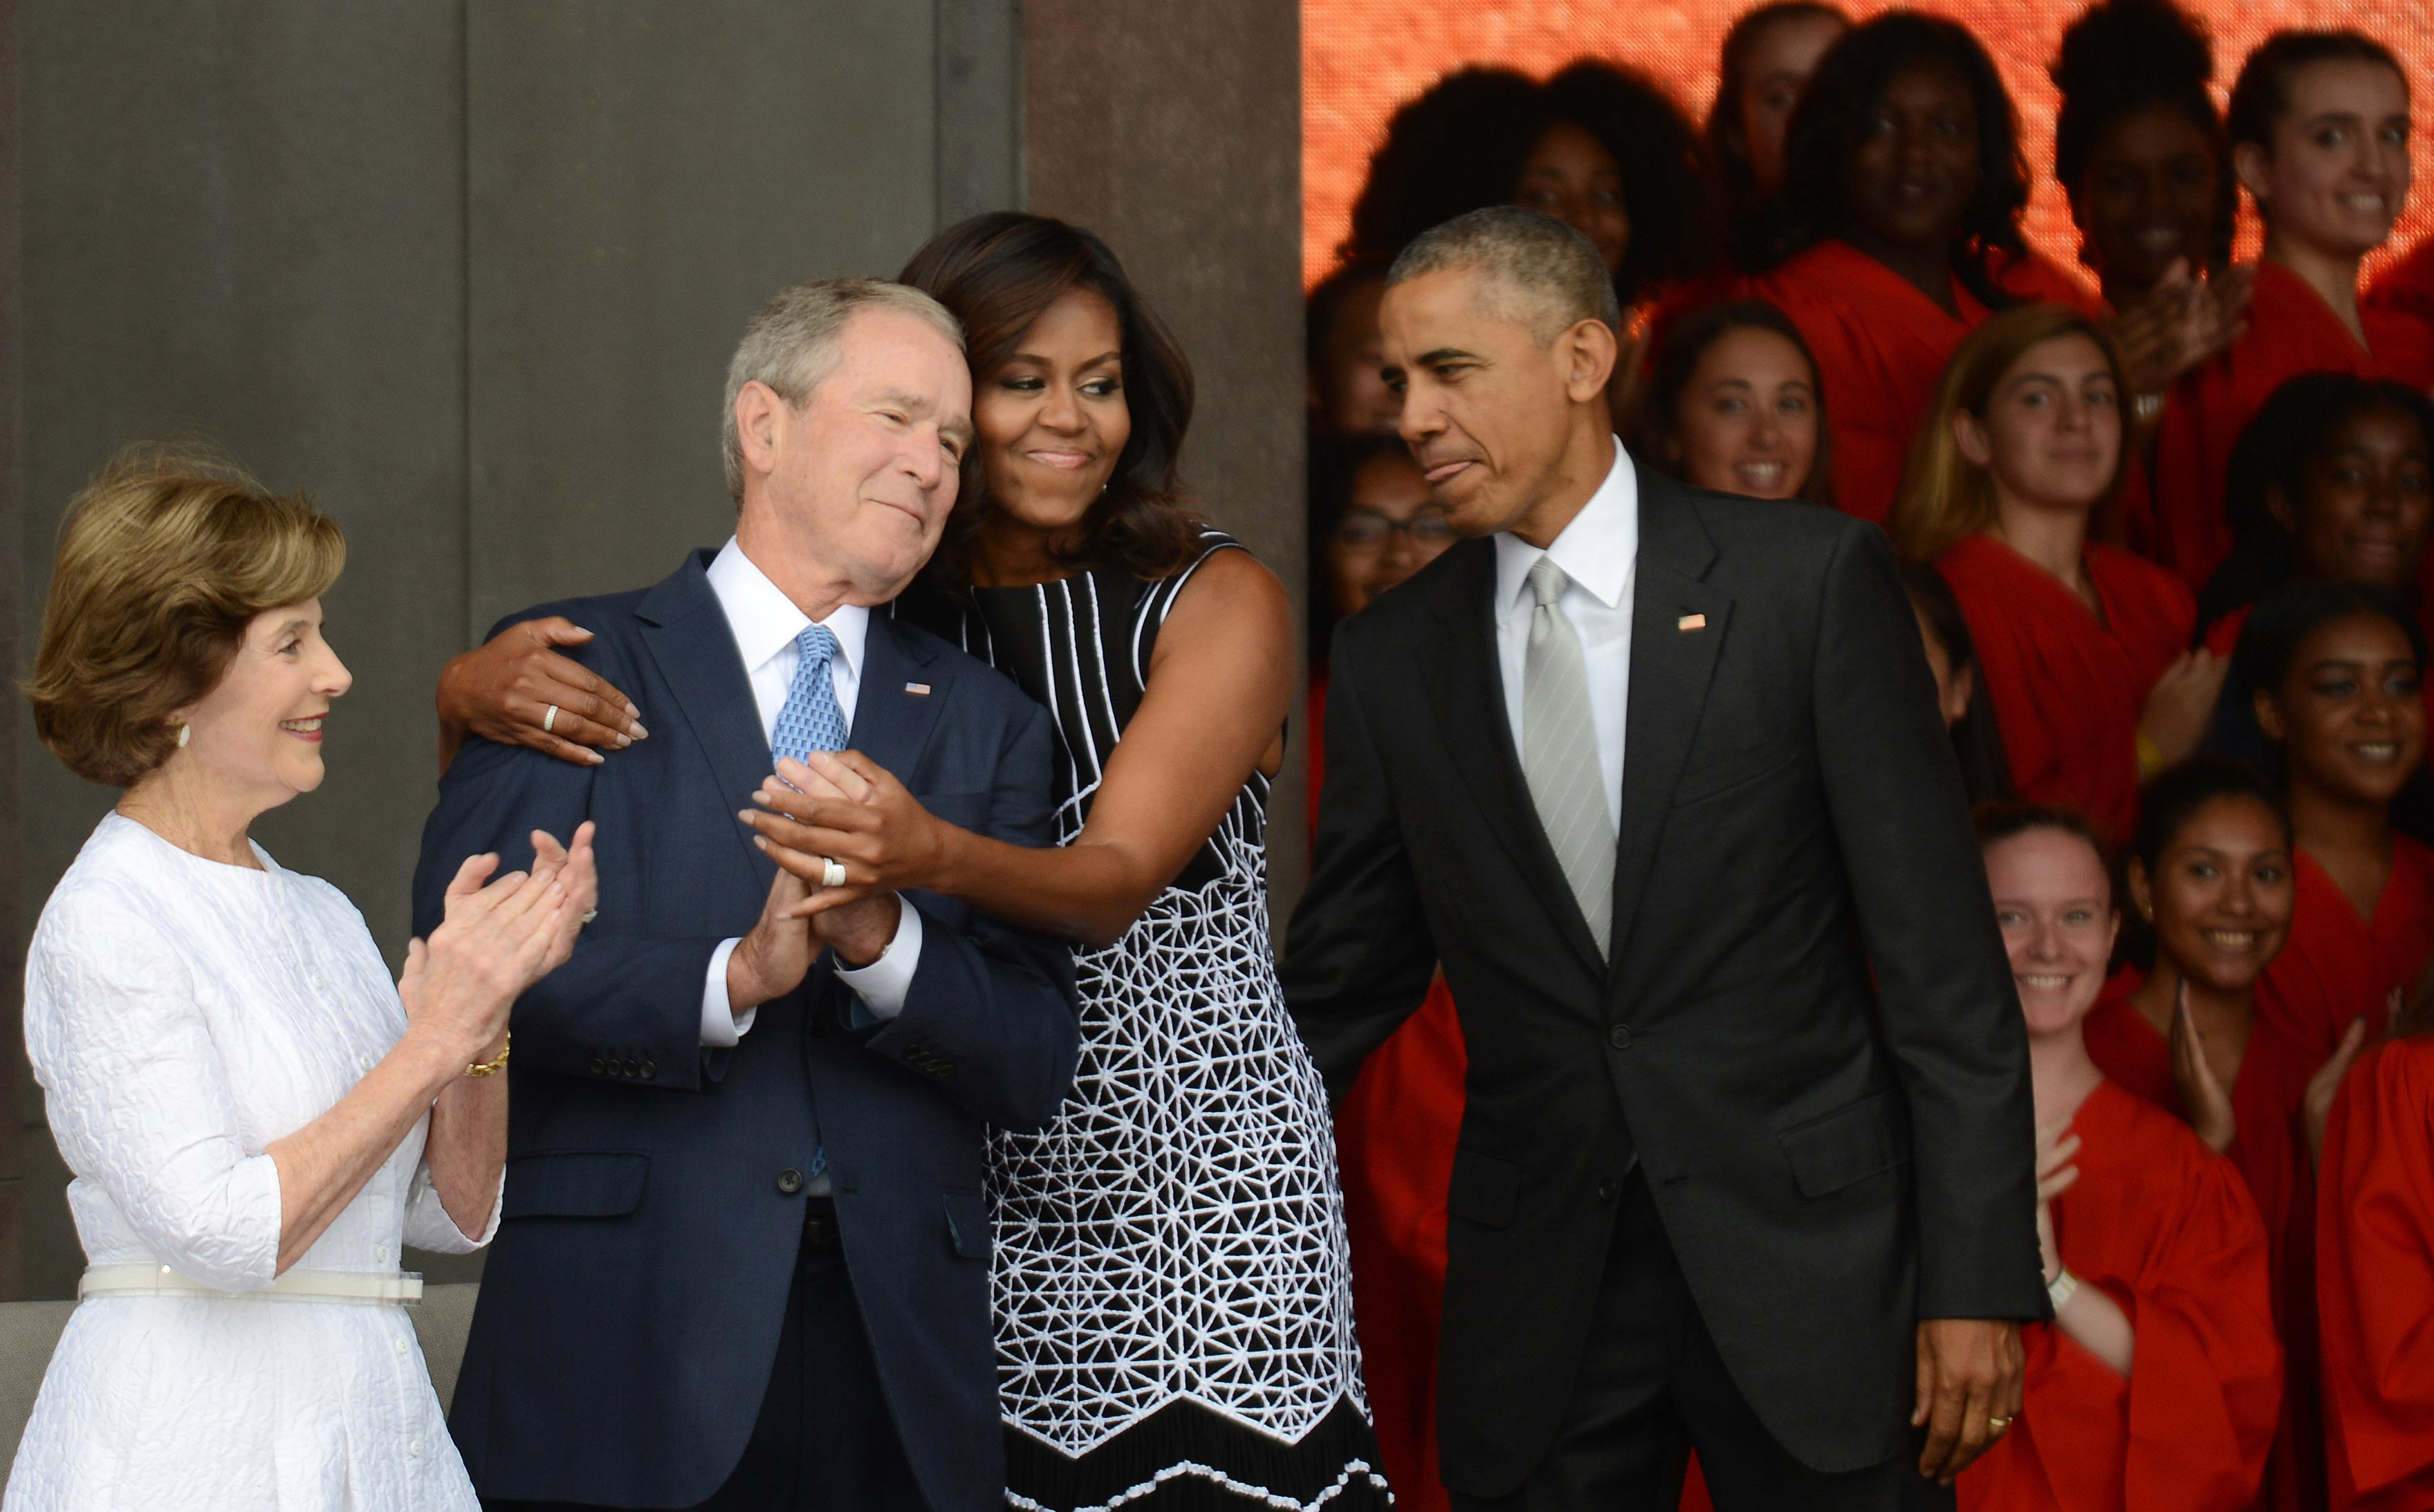 Michelle Obama is getting heat for her friendship with 'wonderful man' George W. Bush: 'I love him to death'